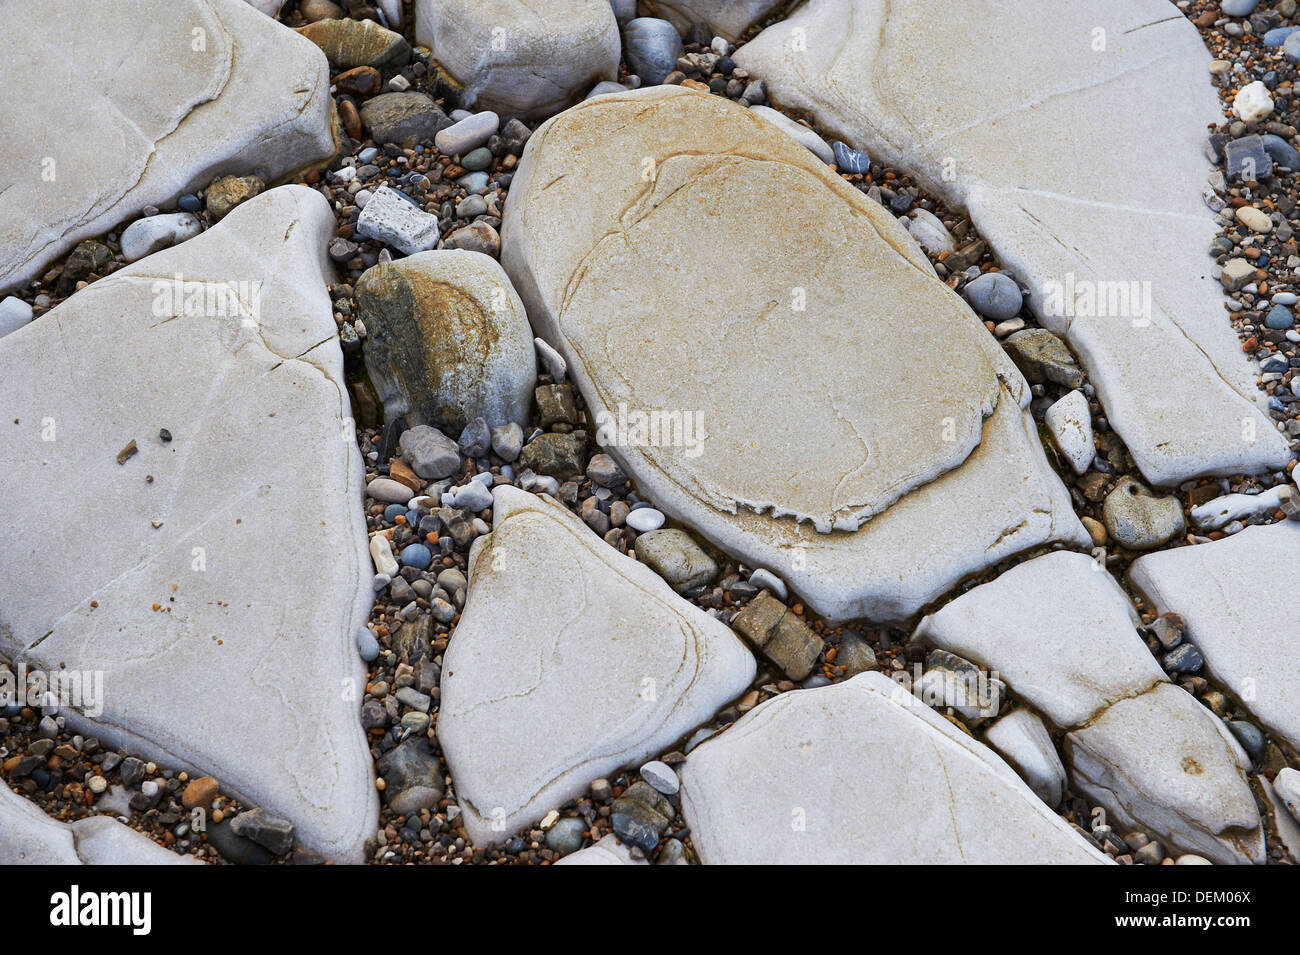 natural patterns formed by rocks and pebbles on a beach - Stock Image